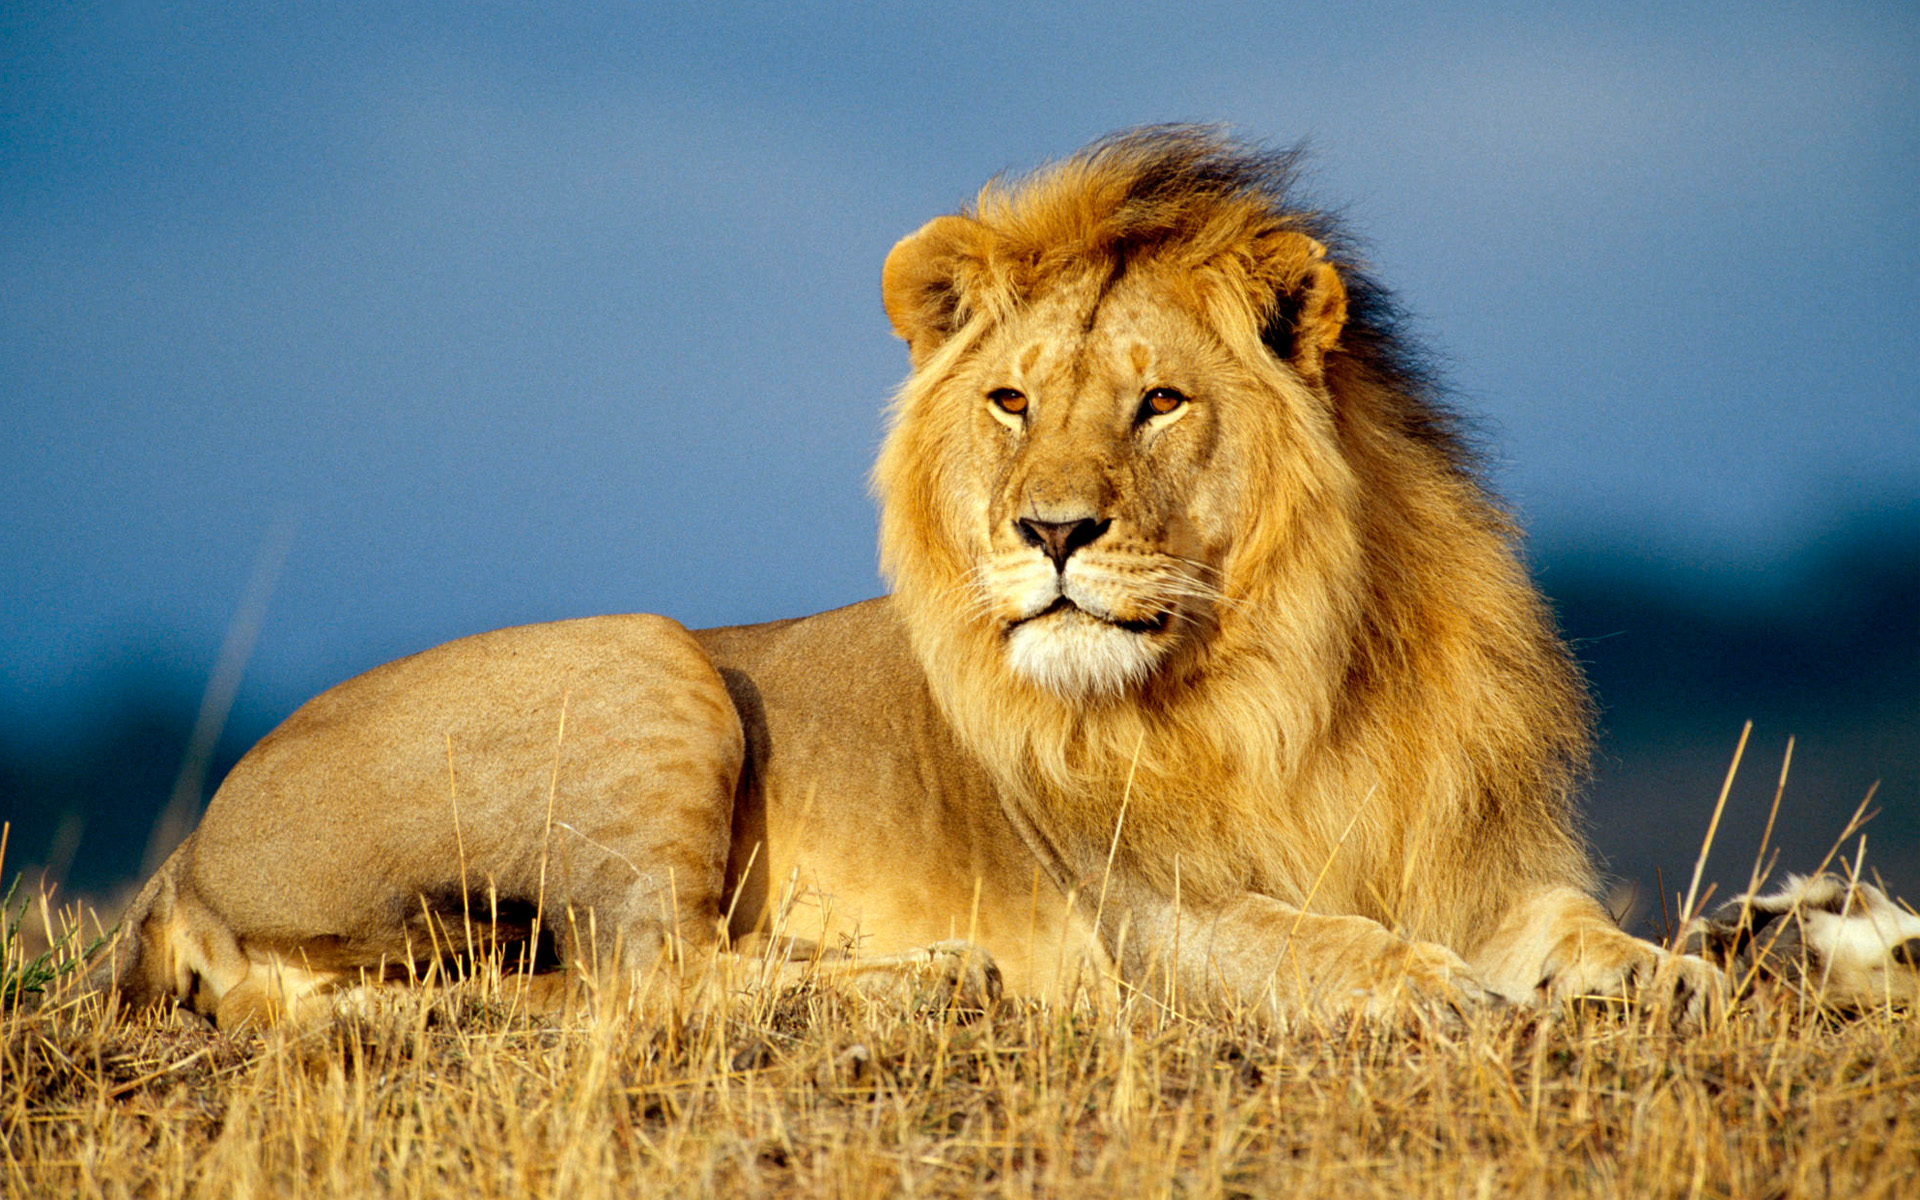 Big Lion Lying in the Grass 288.8 Kb